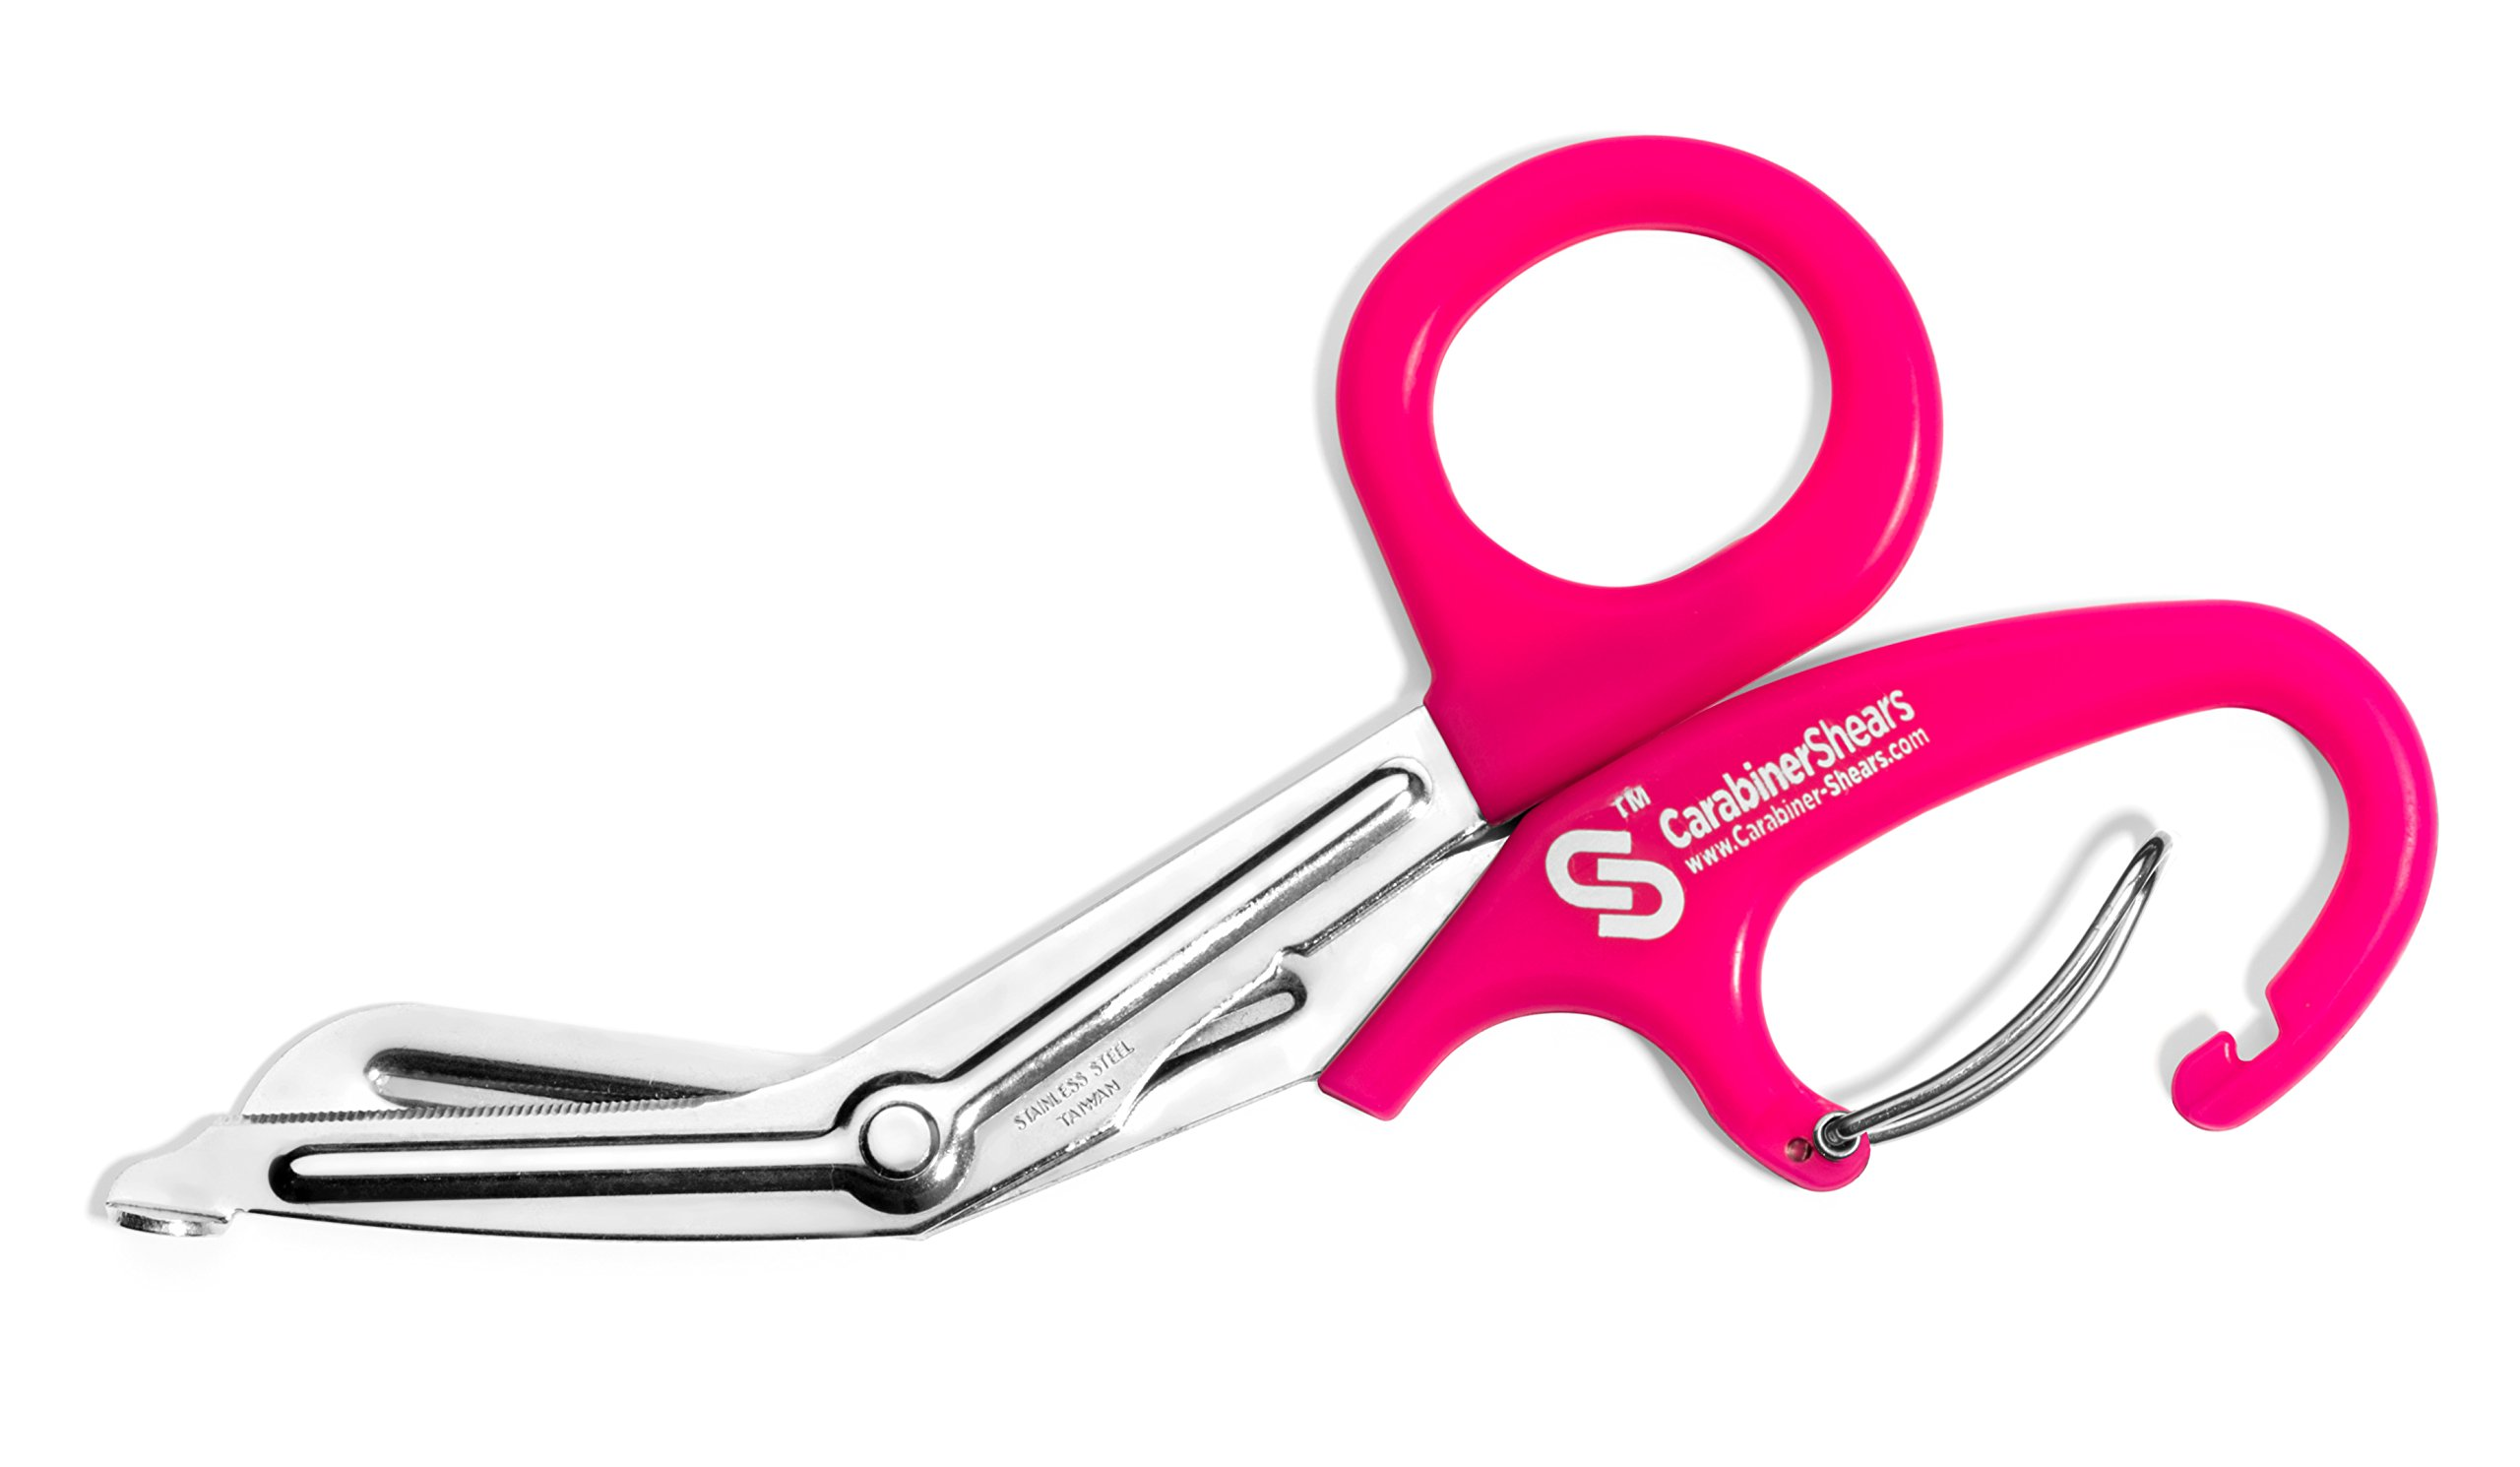 EMT Trauma Shears with Carabiner - Stainless Steel Bandage Scissors for Surgical, Medical & Nursing Purposes - Sharp Curved Scissor is Perfect for EMS, Doctors, Nurses, Cutting Bandages (Pink) by Carabiner-Shears